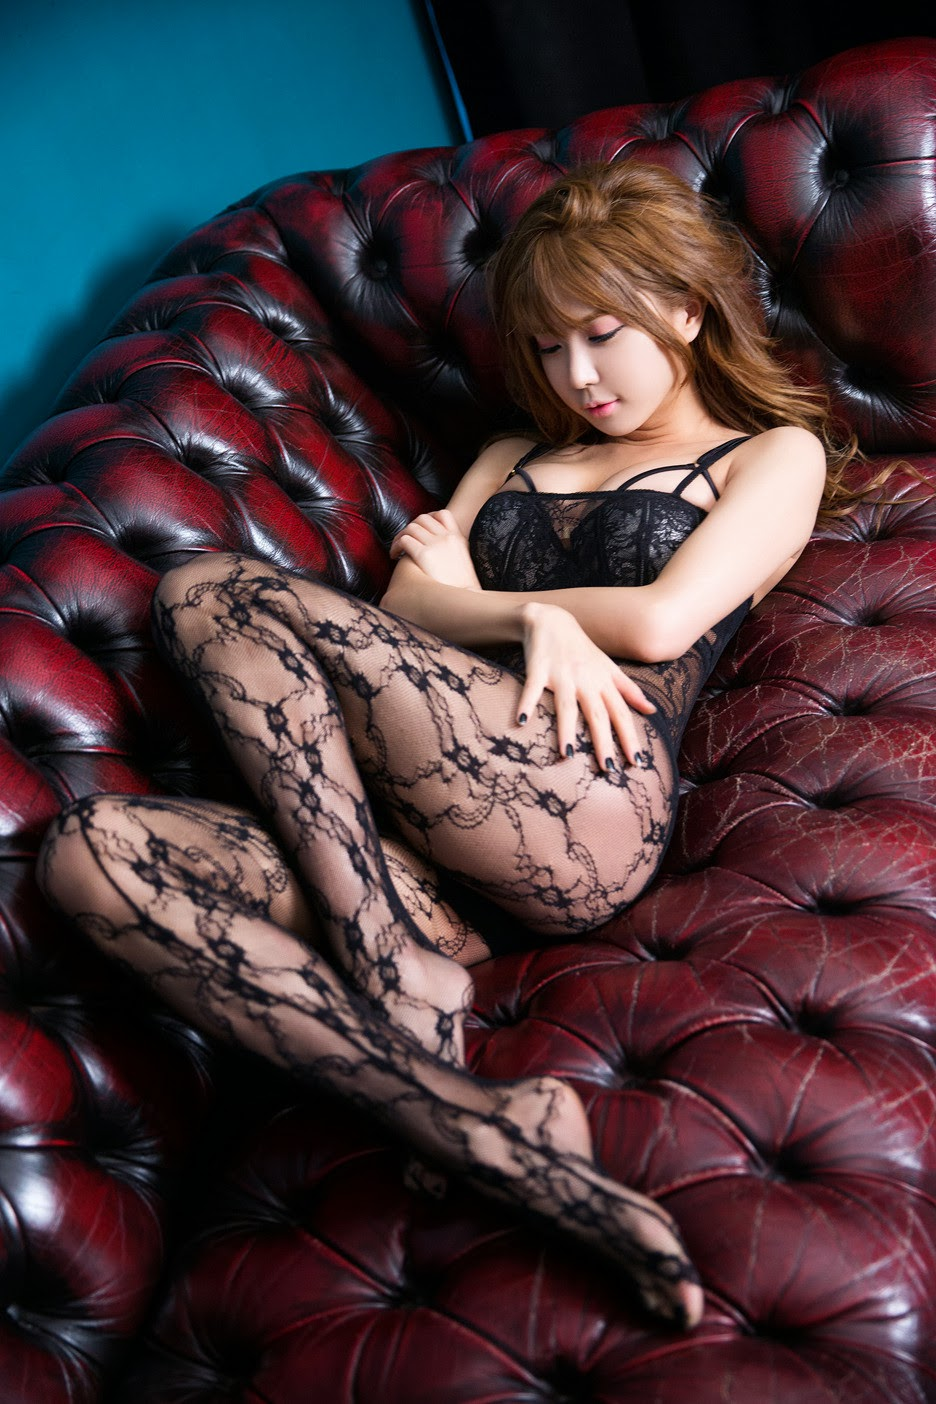 3 Heo Yoon Mi  - very cute asian girl-girlcute4u.blogspot.com